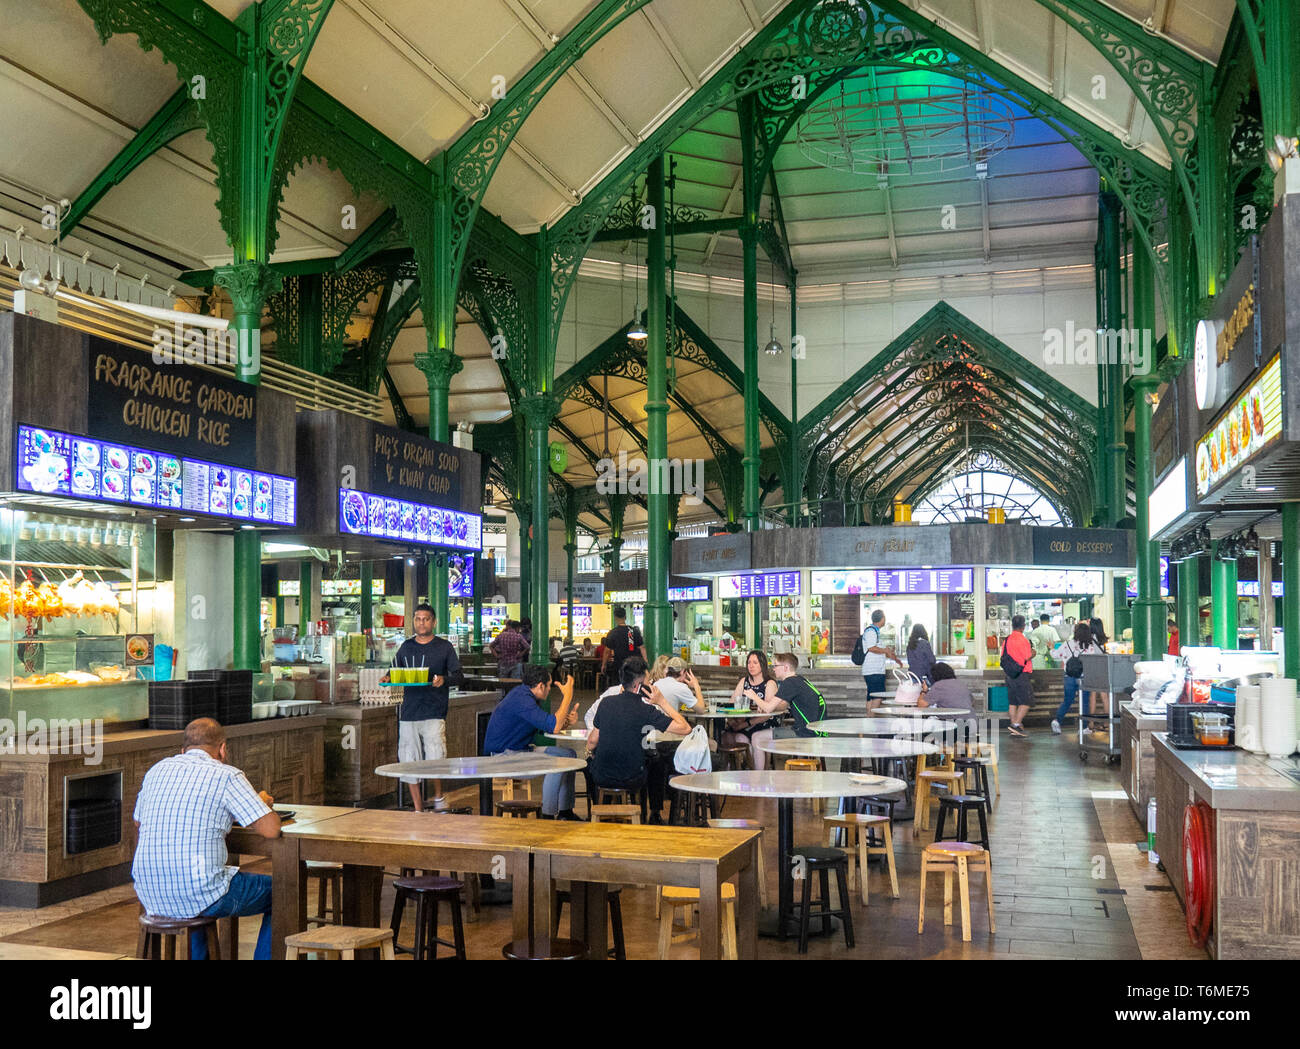 green painted cast iron latticework, and diners seated at tables Lau Pa Sat Hawker Food markets in downtown Singapore. - Stock Image